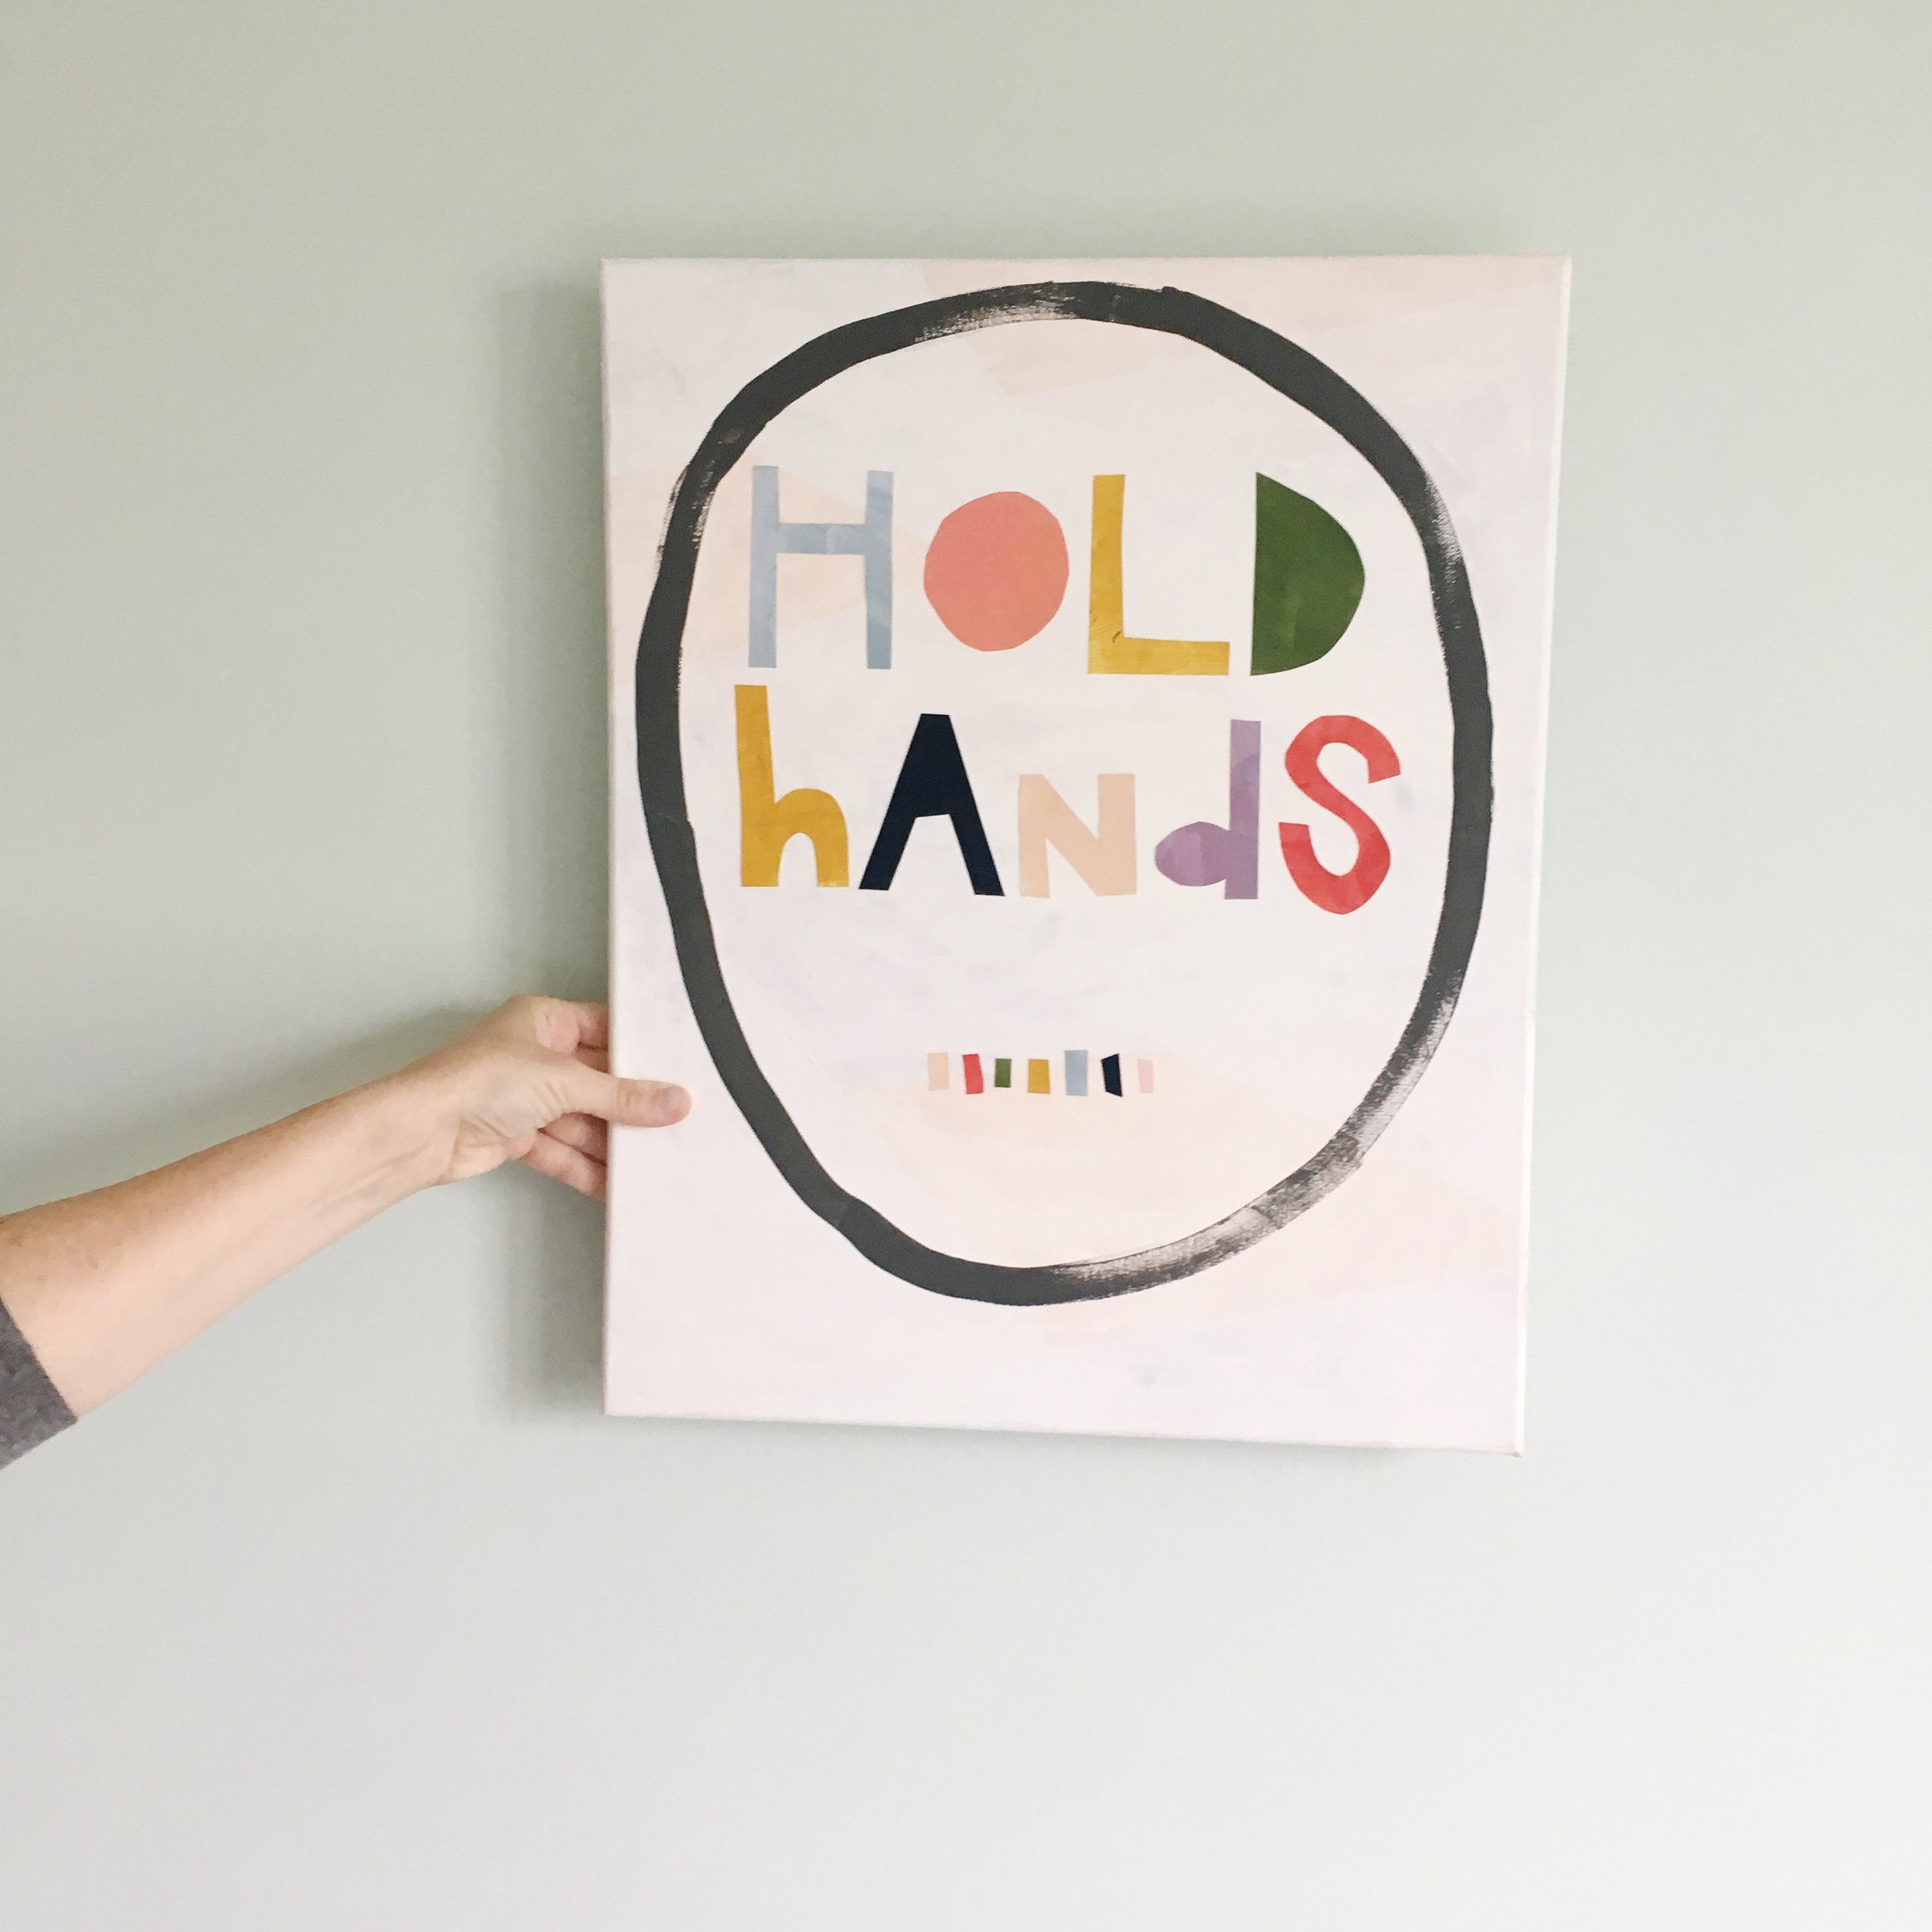 hold hands acrylic collage painting by brooke petermann.JPG